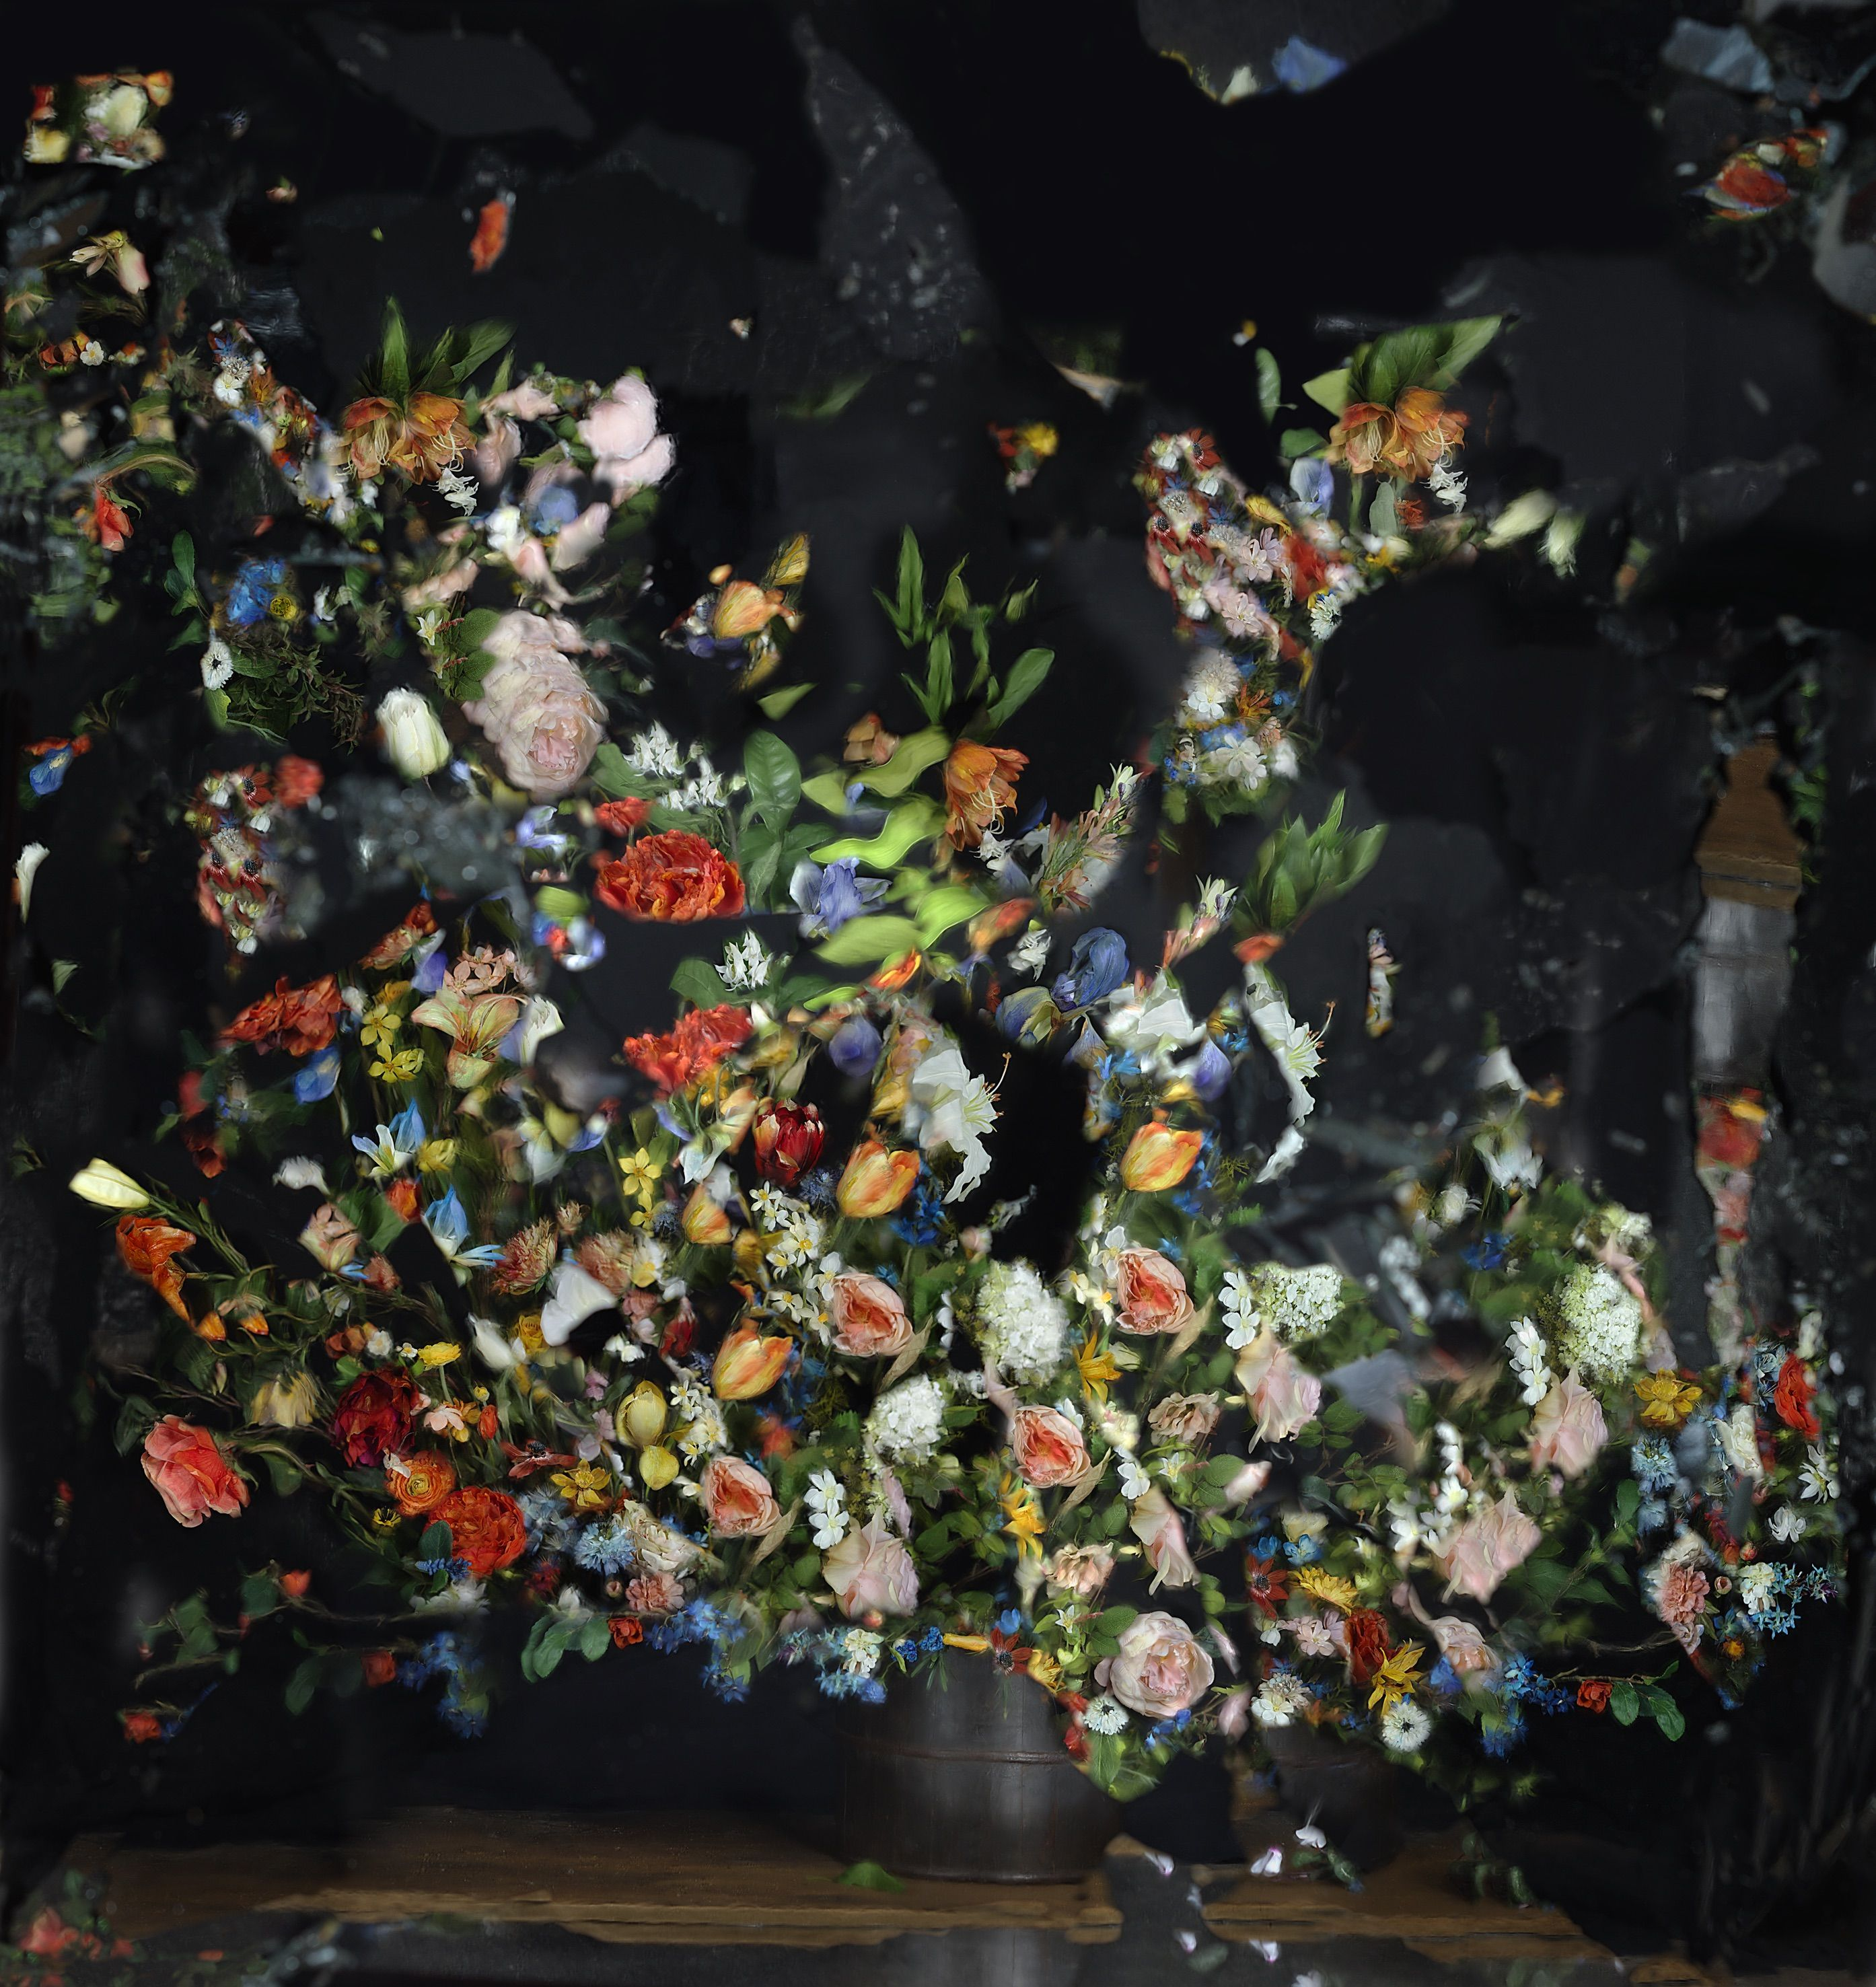 On Reflection Virtual E02 by Ori Gersht on Paddle8. Paddle8 is a marketplace for collectors, presenting auctions of extraordinary art and objects.